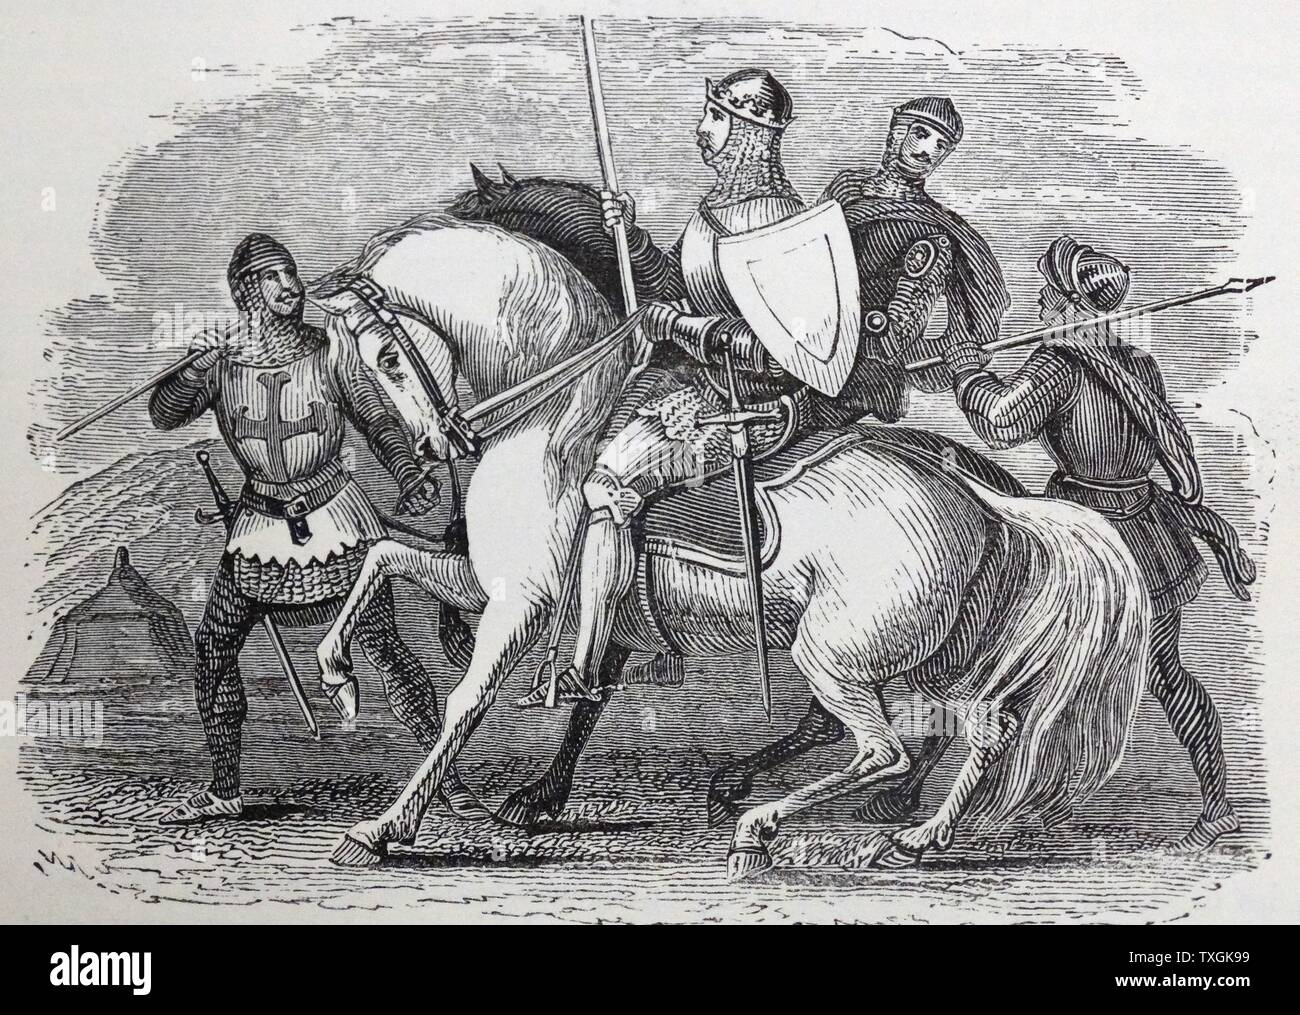 Engraving depicting a 14th Century knight during the Hundred Years' War. Dated 14th Century - Stock Image